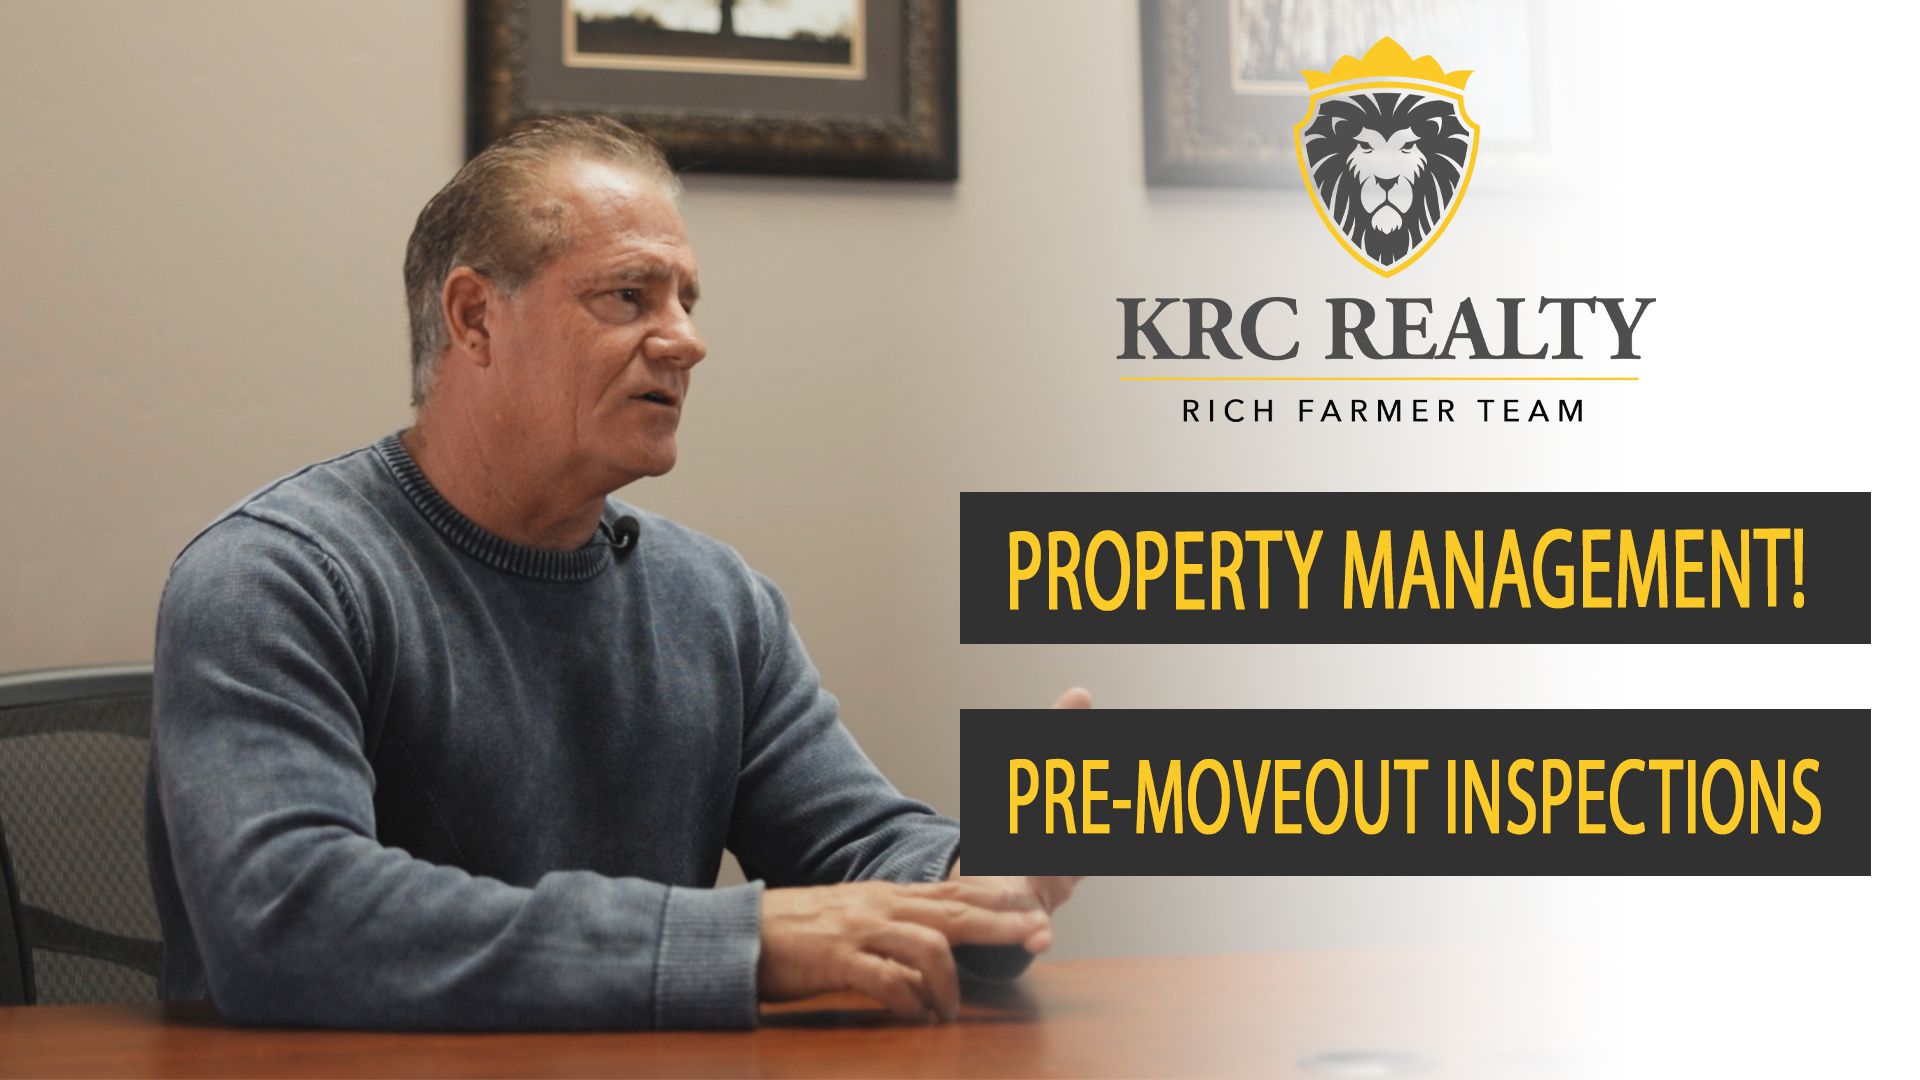 Should You Do A Pre-Move Out Inspection